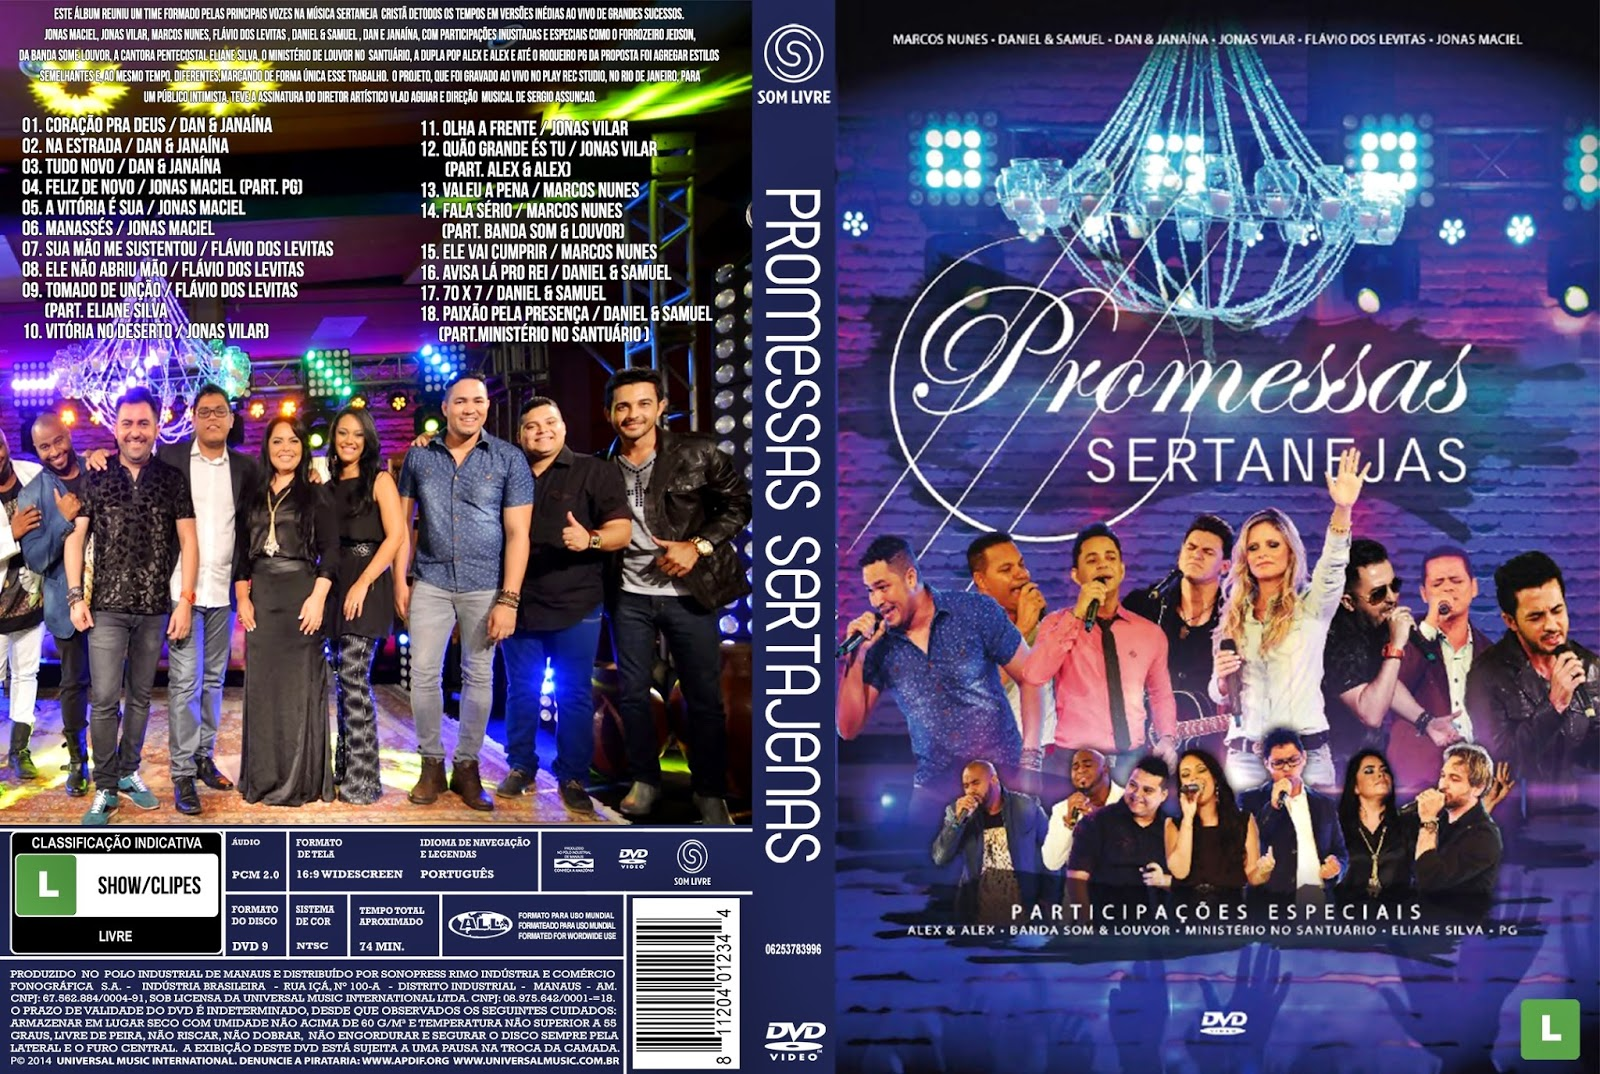 Download Promessas Sertanejas DVD-R Promessas 2BSertanejas